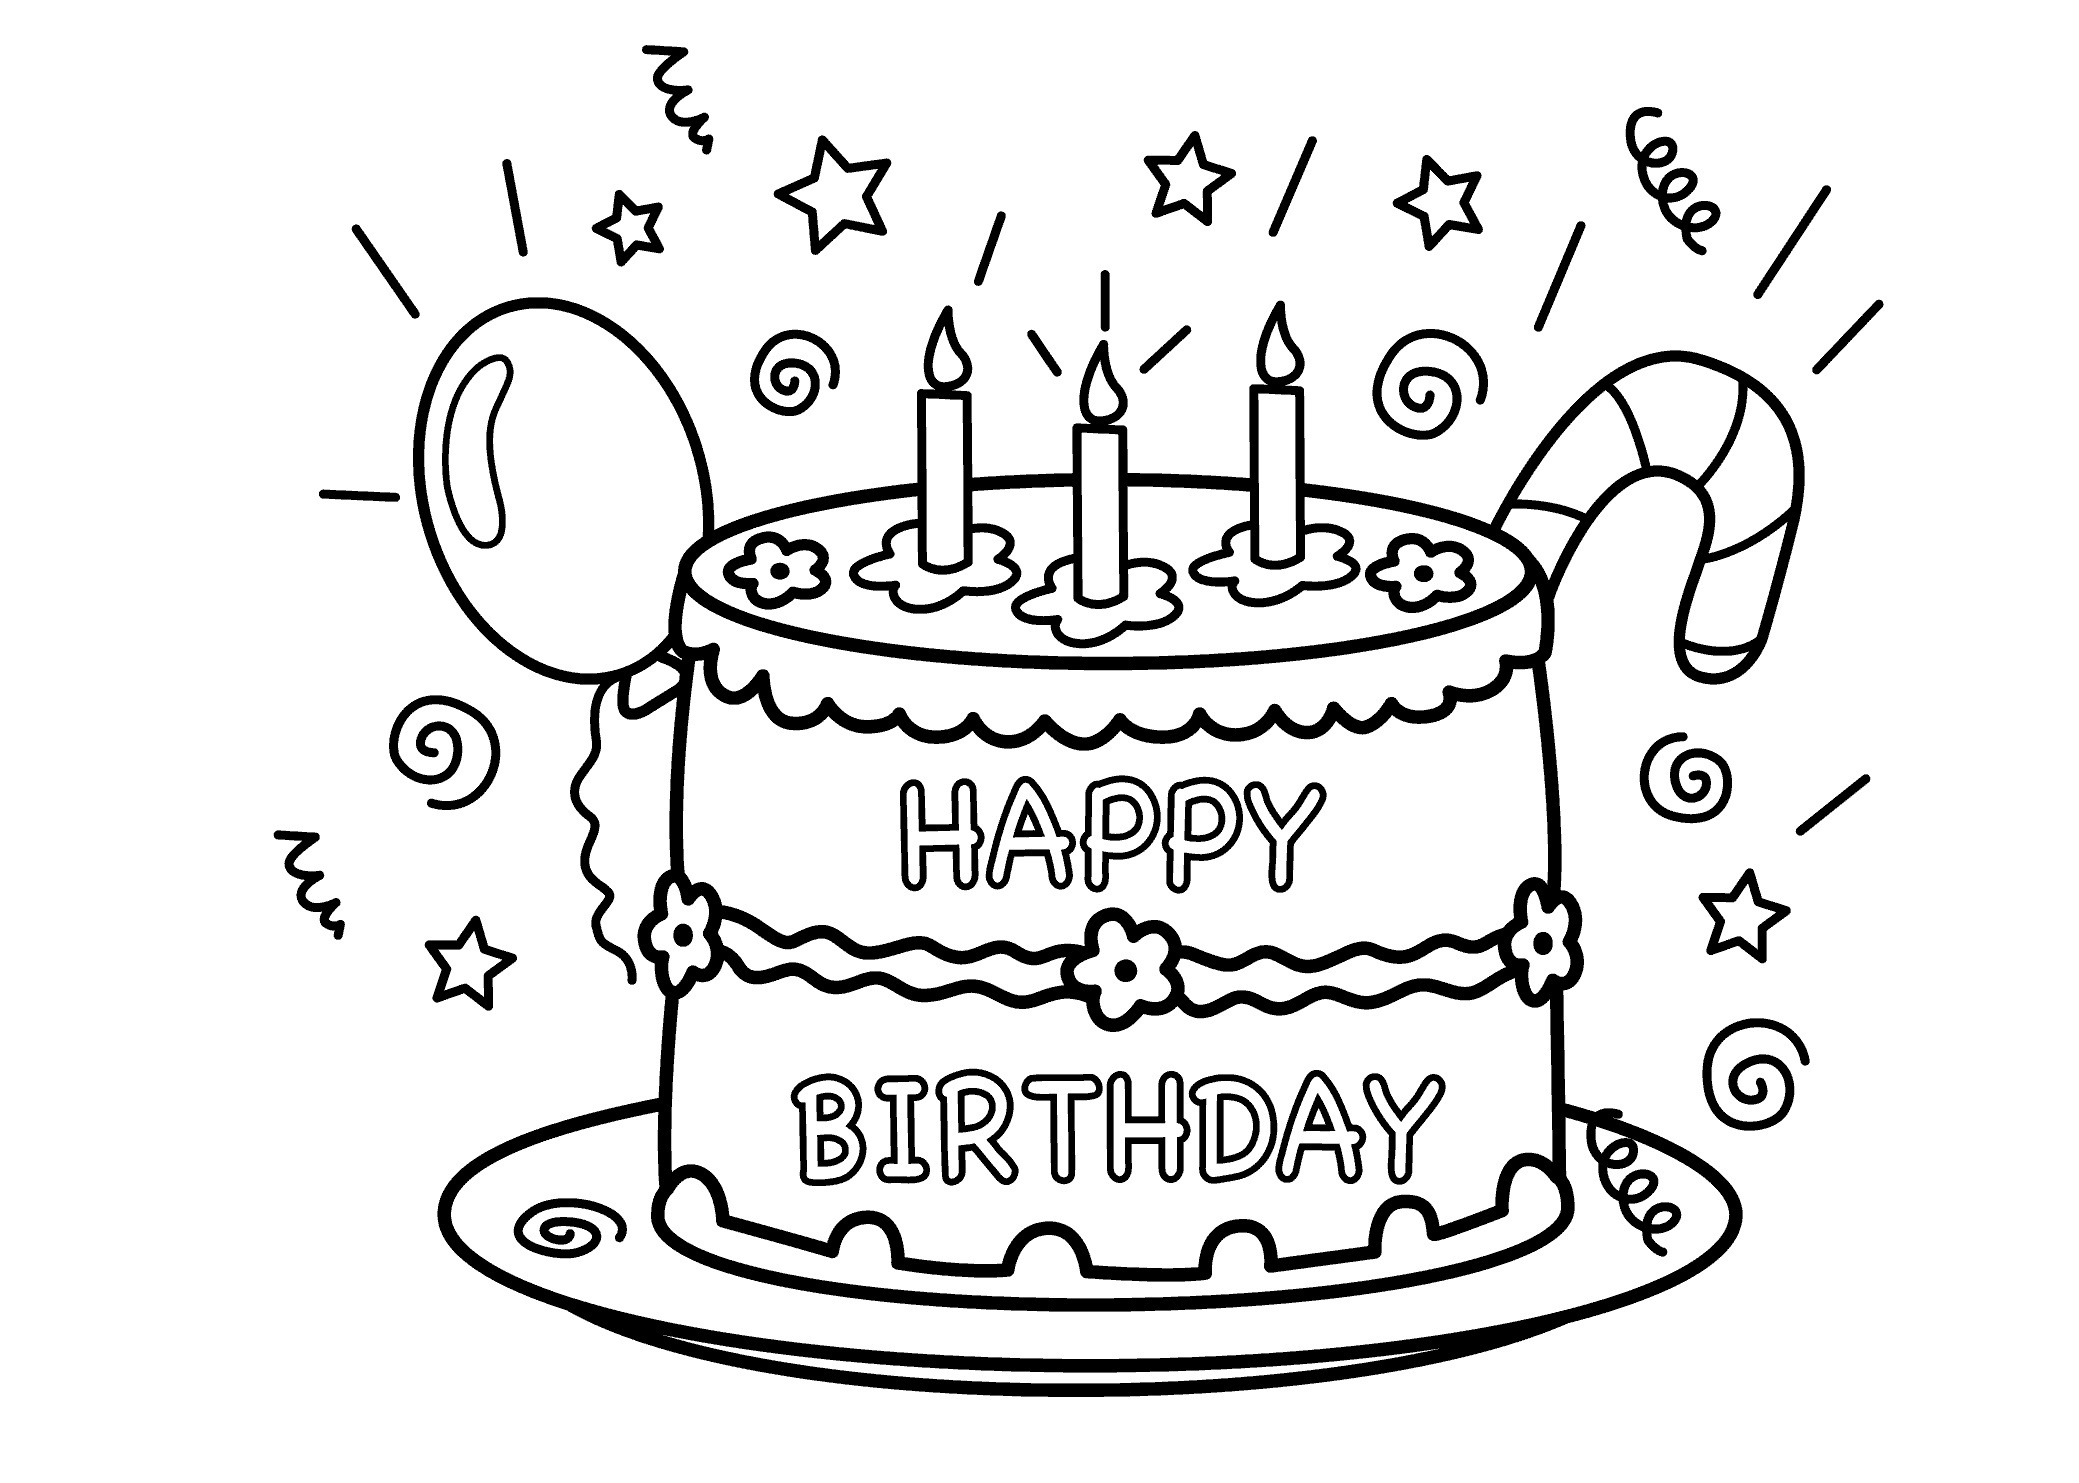 birthday cake color page - Birthday Cake Coloring Pages